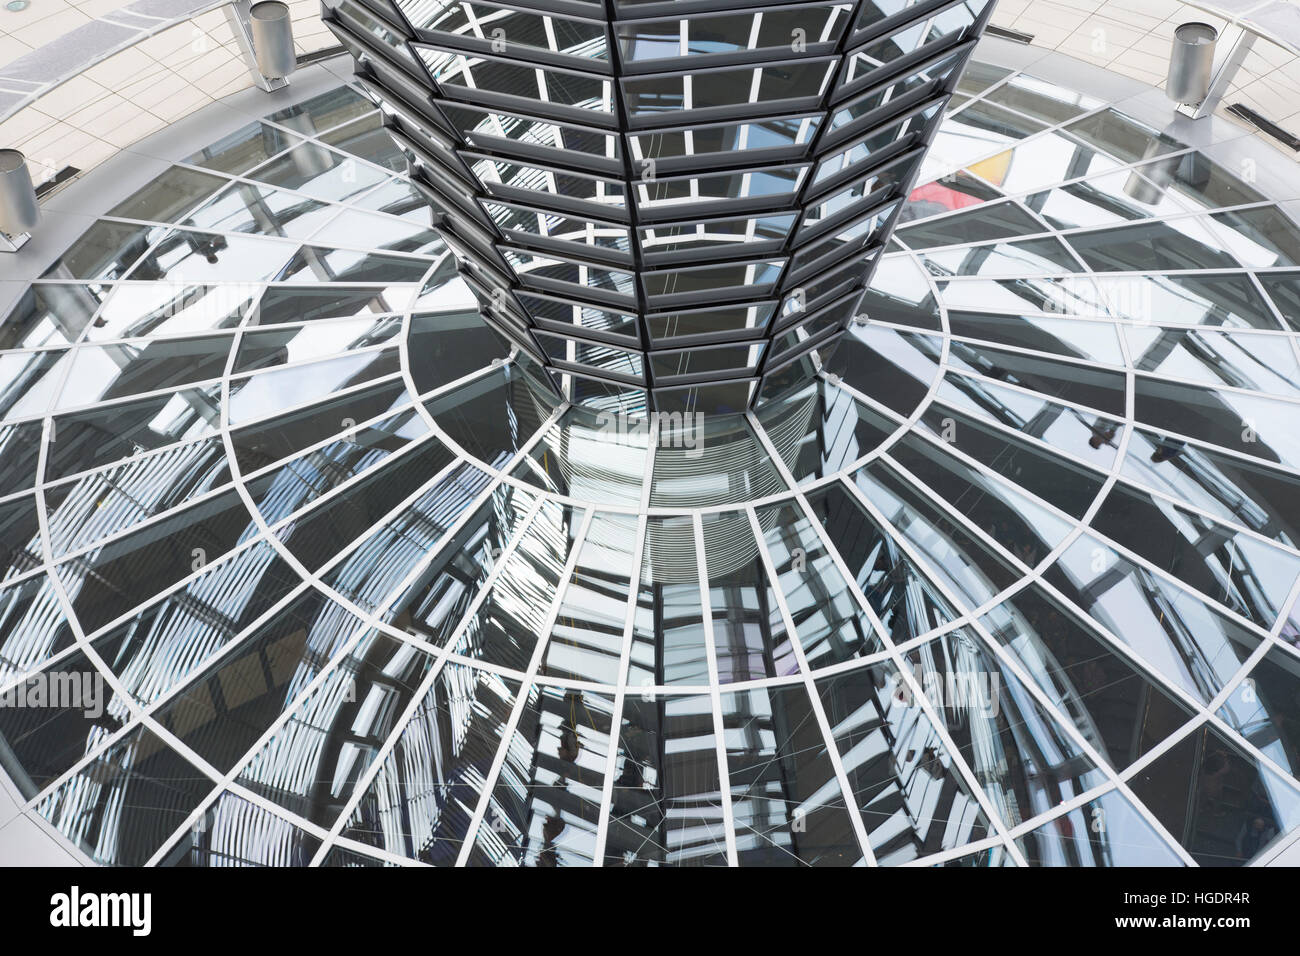 the dome of the Reichstag building in Berlin - Stock Image